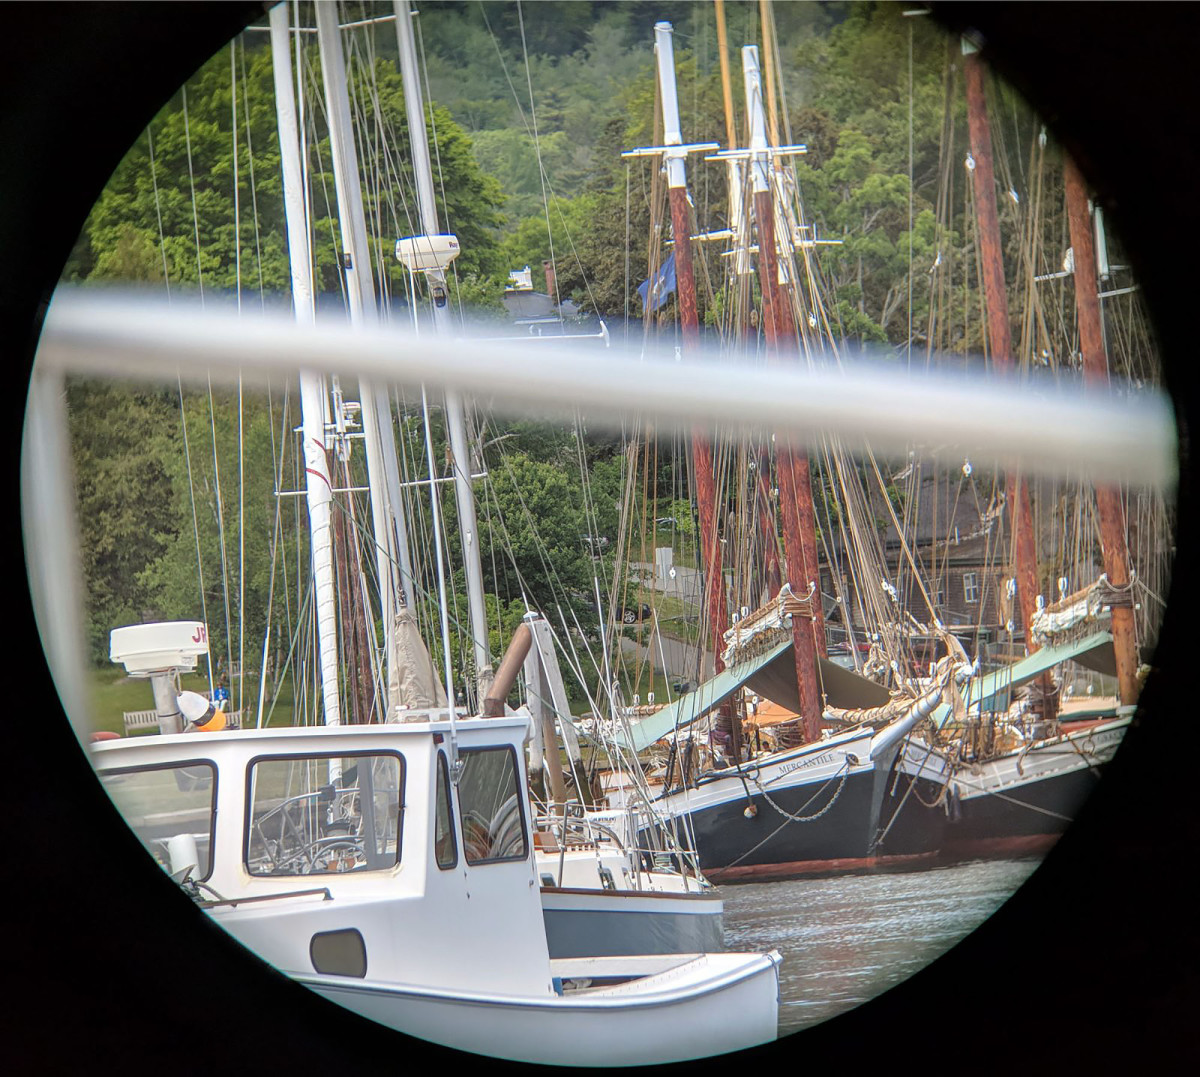 Weems-and-Plath-7x50-Pro-monocular-view-Camden-cPanbo-1600x1436